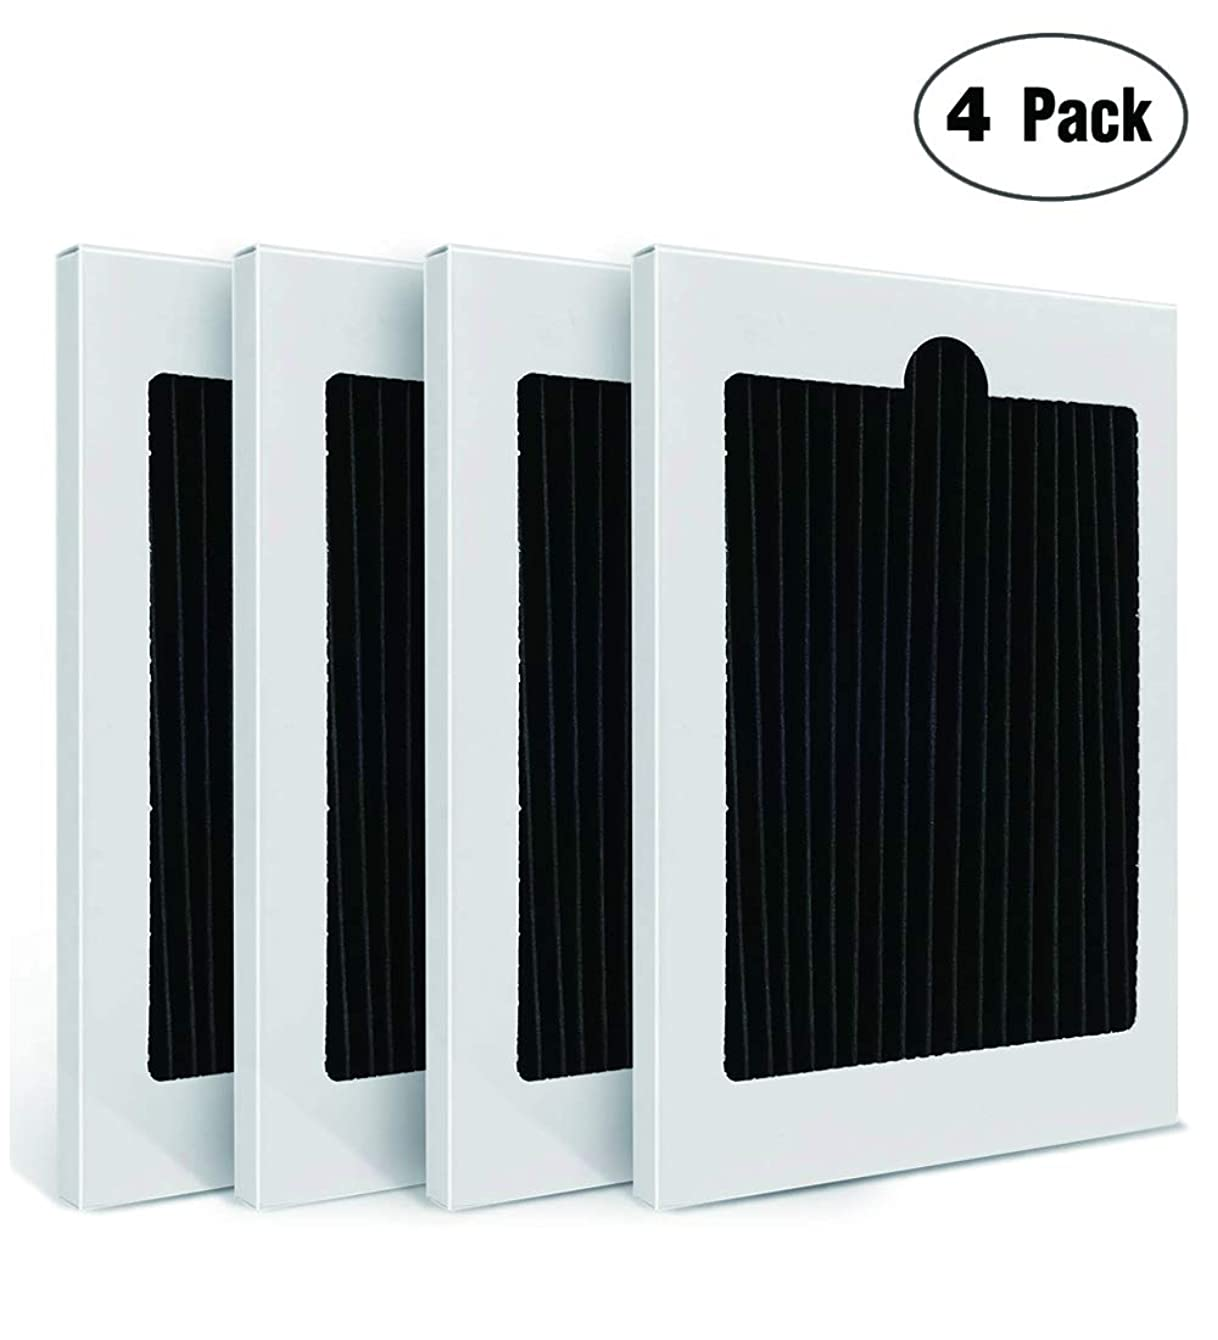 4-Pack BRIGHTHSHOW Refrigerator Air Filter Replacement - Fits for PAULTRA Pure Air Ultra Electrolux EAFCBF 242047801,242061001,7241754001